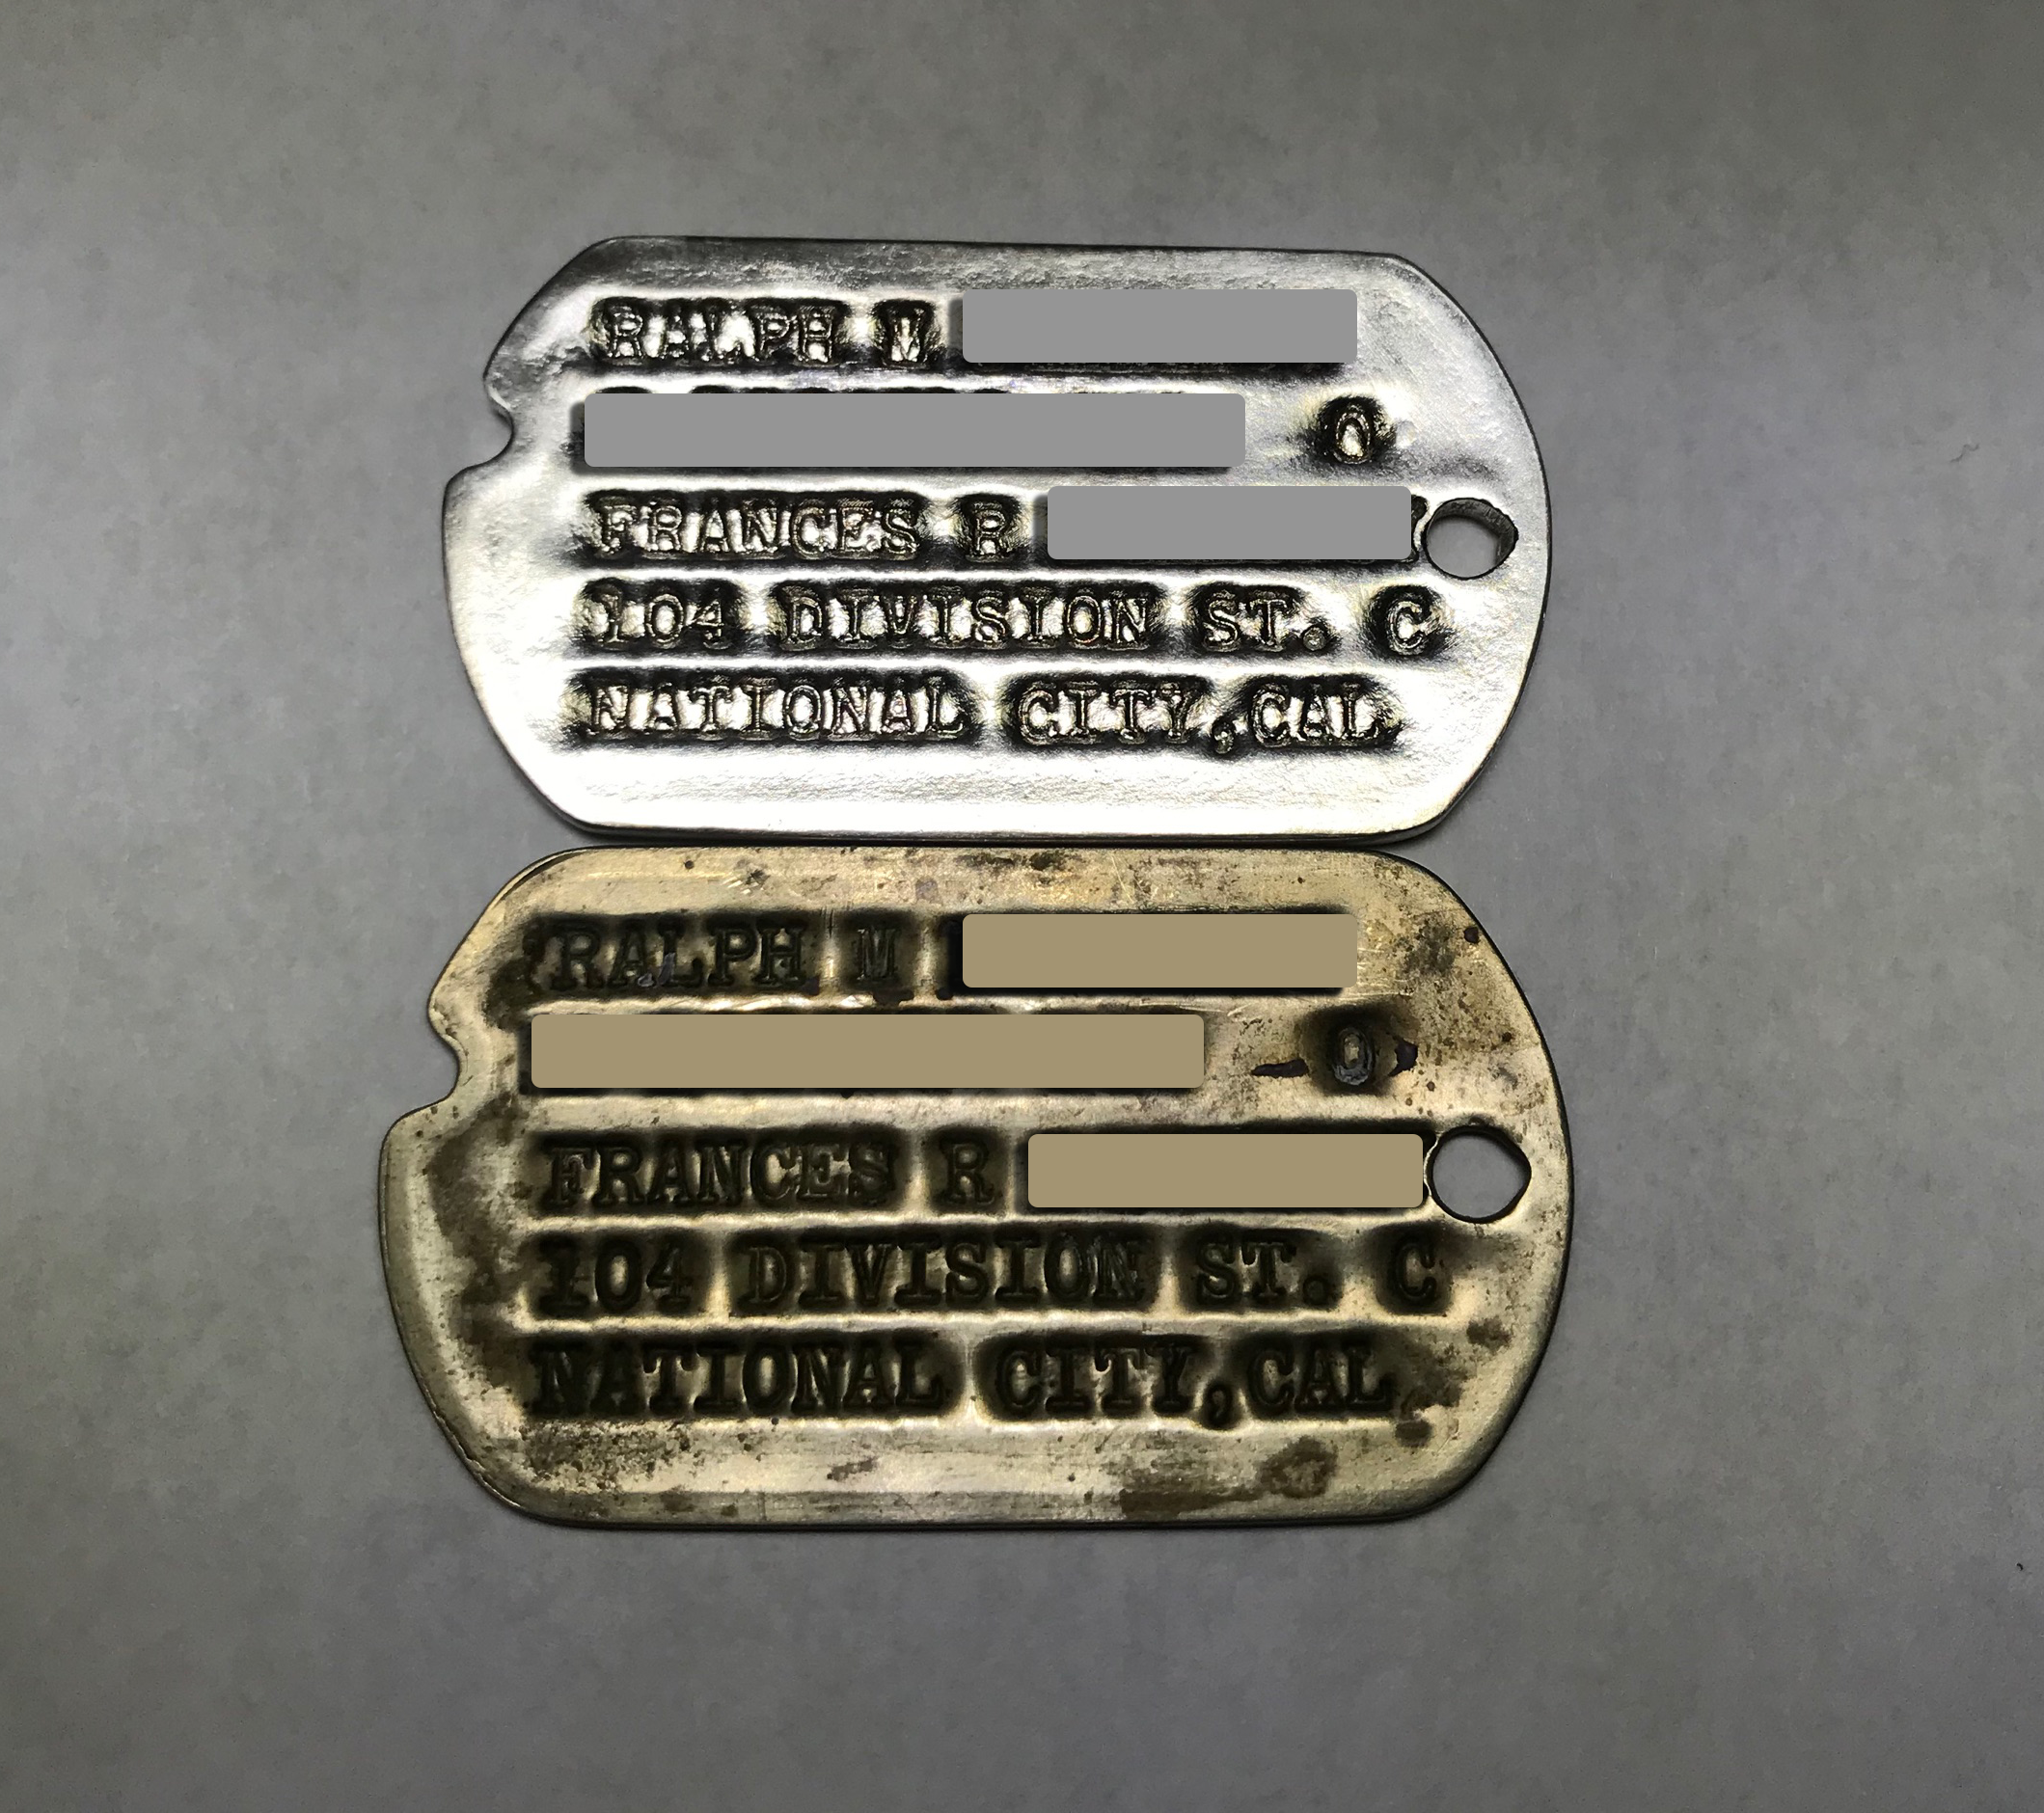 Dog tag replica